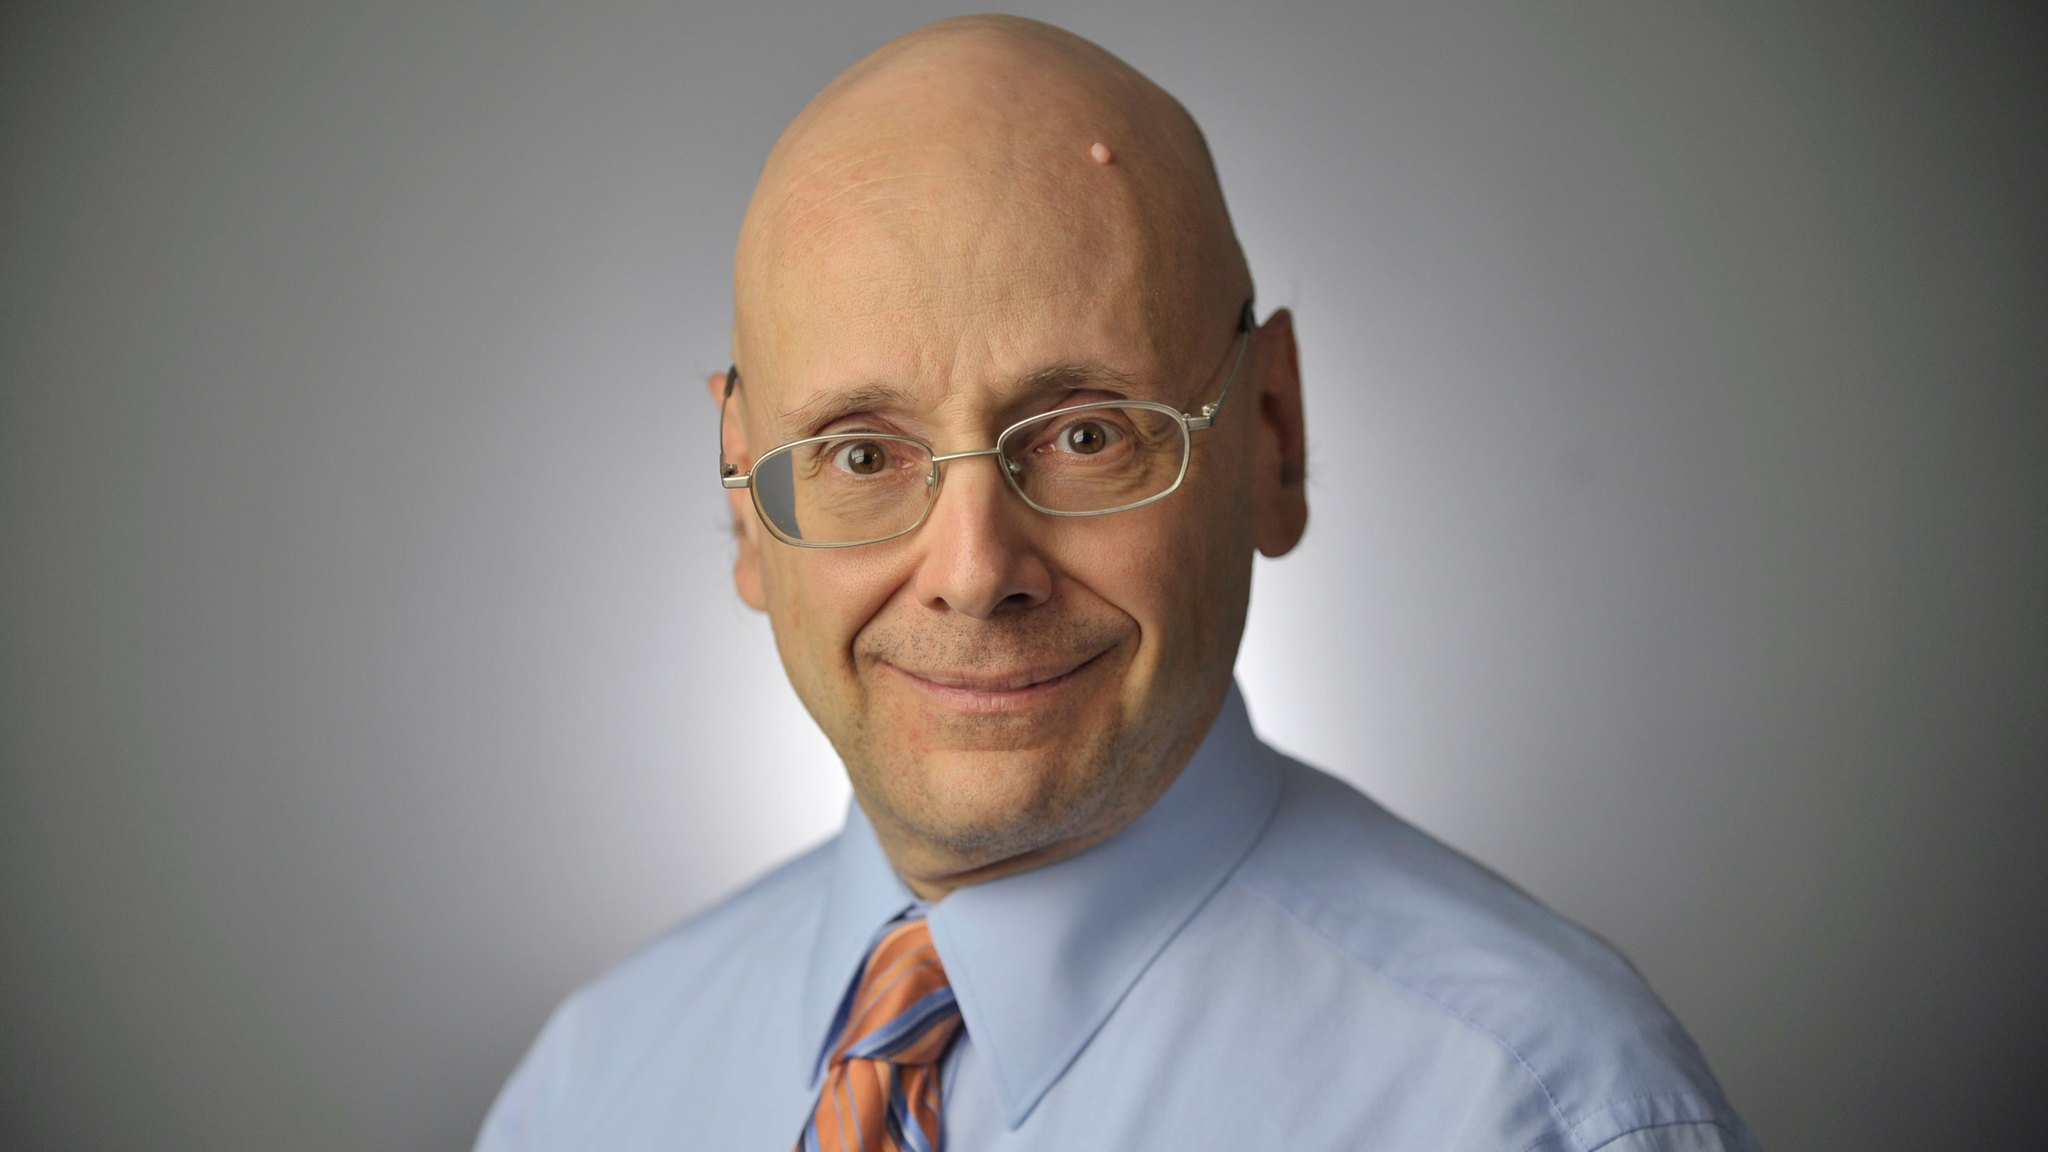 This image obtained from the Capital Gazette shows Capital Gazette Editorial Page Editor Gerald Fischman, one of the victims of the June 28, 2018, shooting at the newspaper in Annapolis, Maryland.